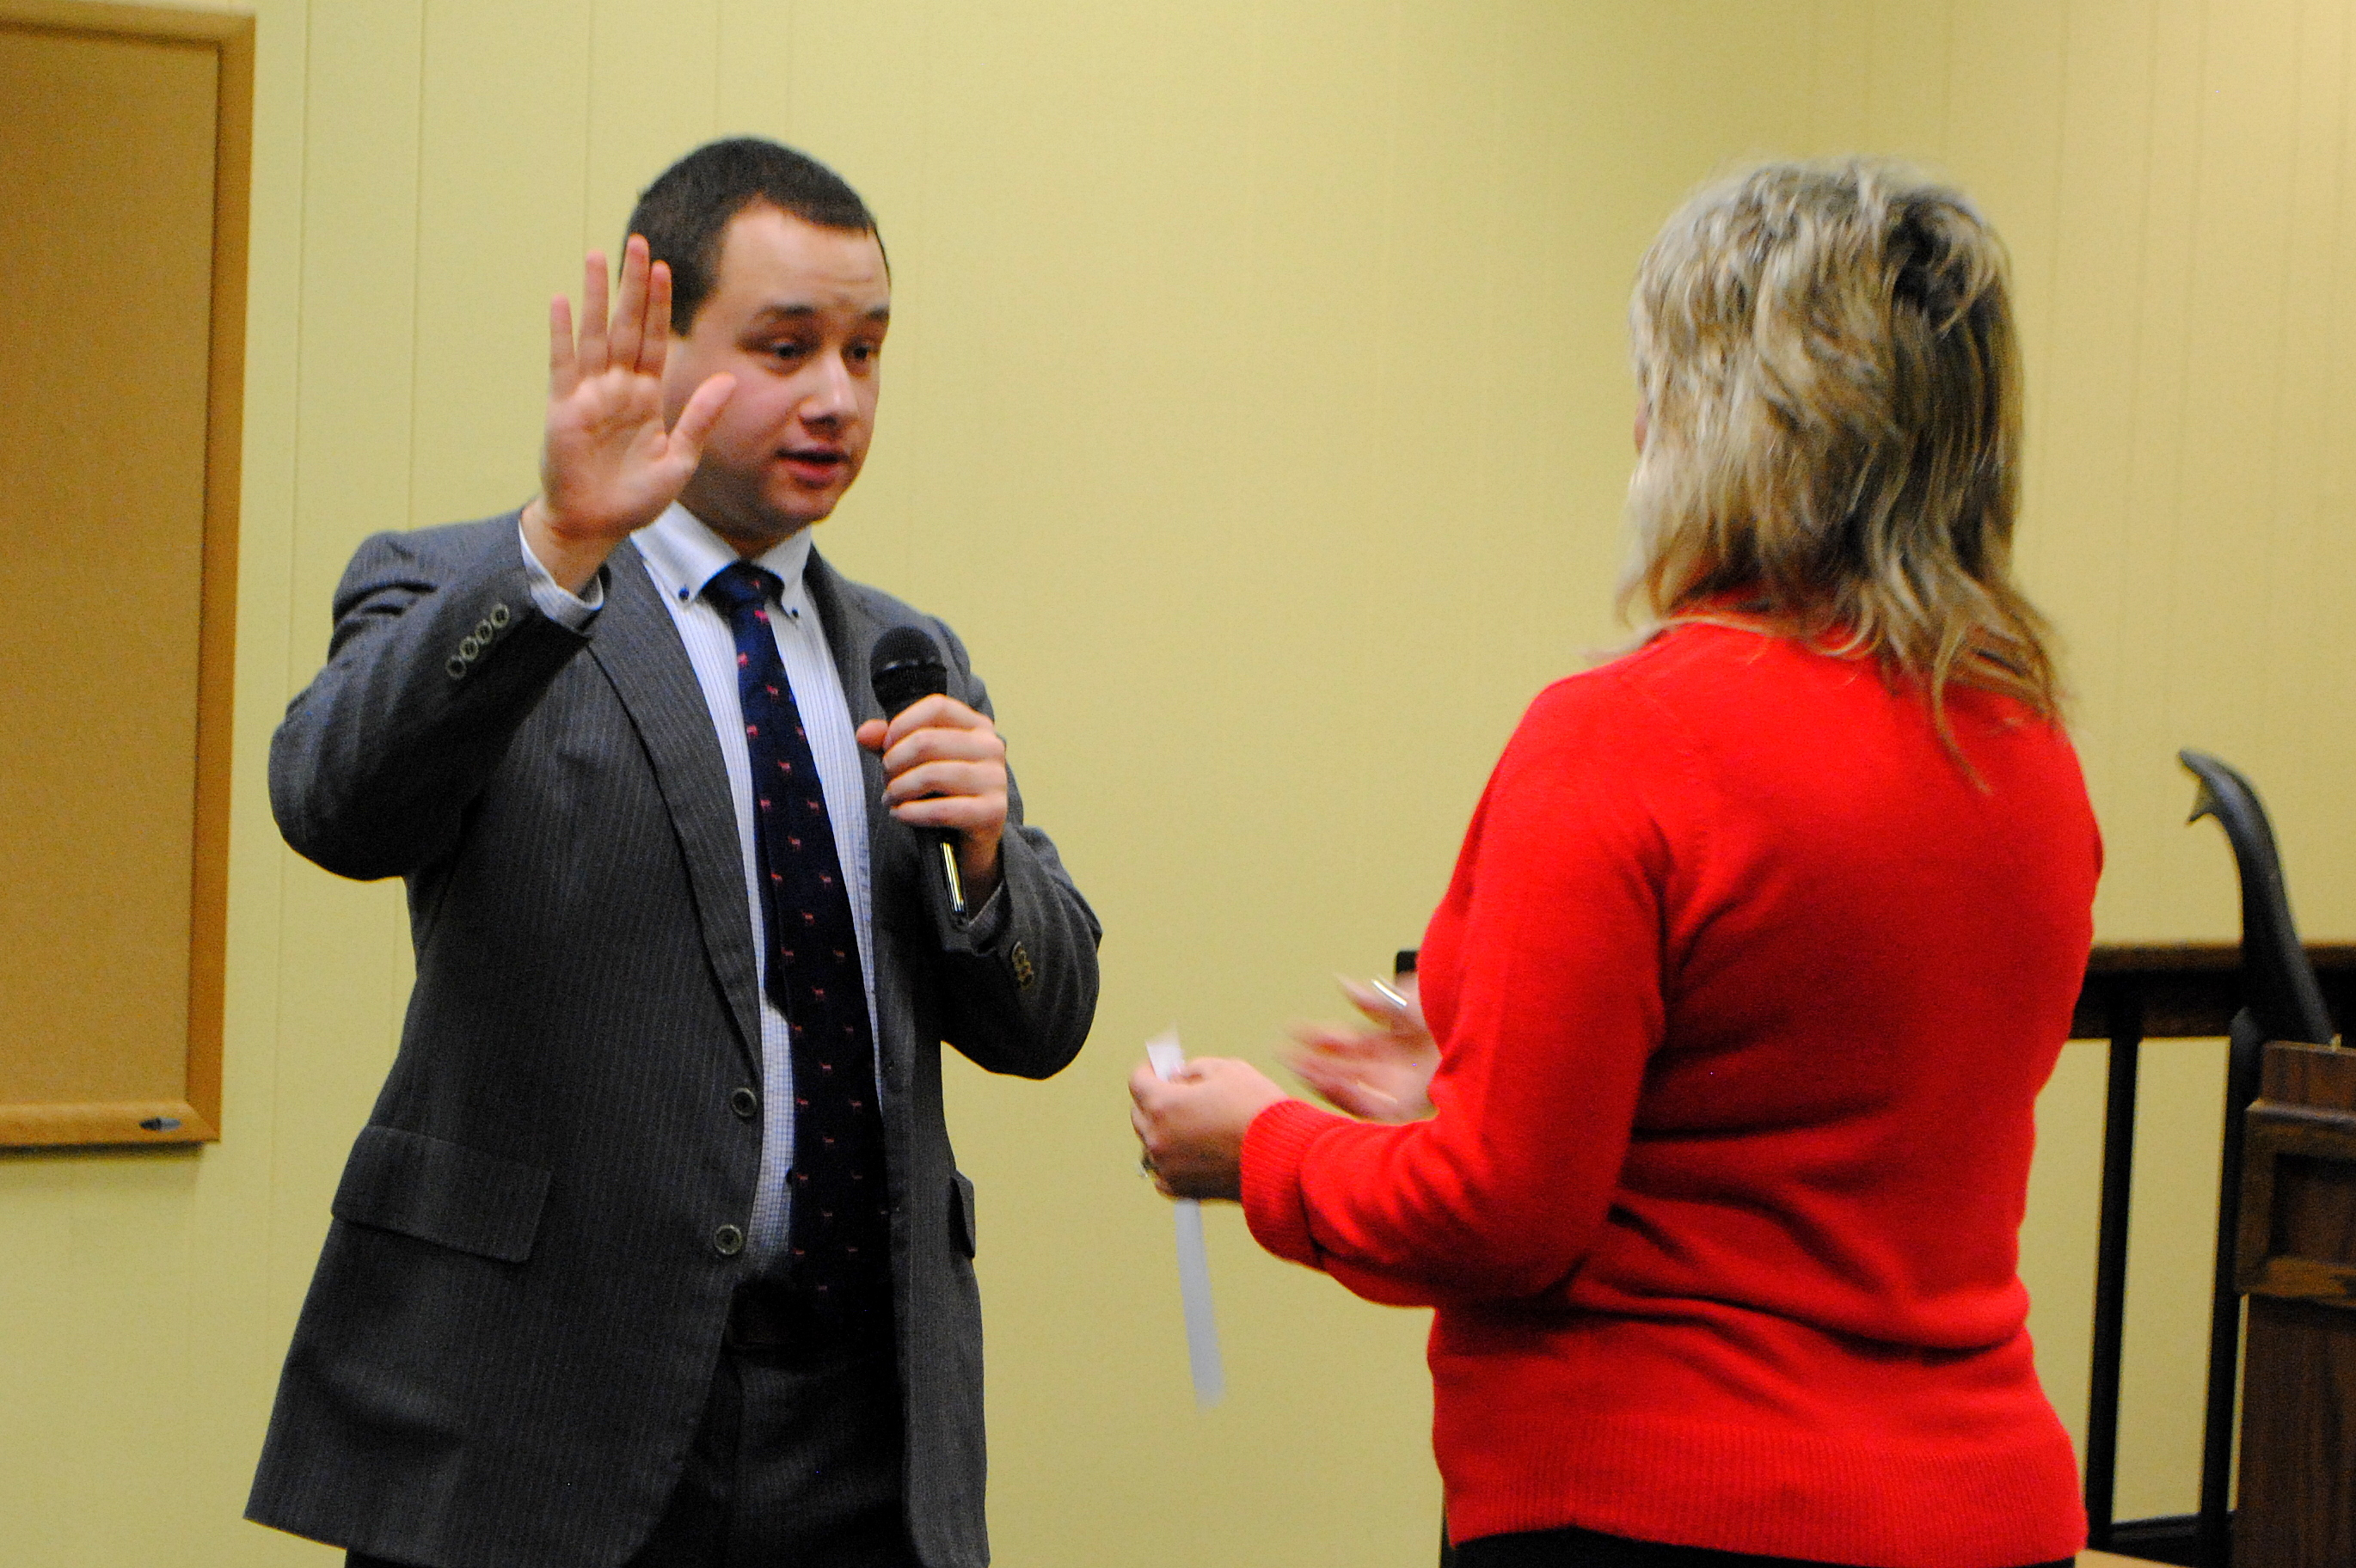 Kevin Davis was recently sworn in as Croton village trustee, an upset in a rare three-way Democratic primary in September.